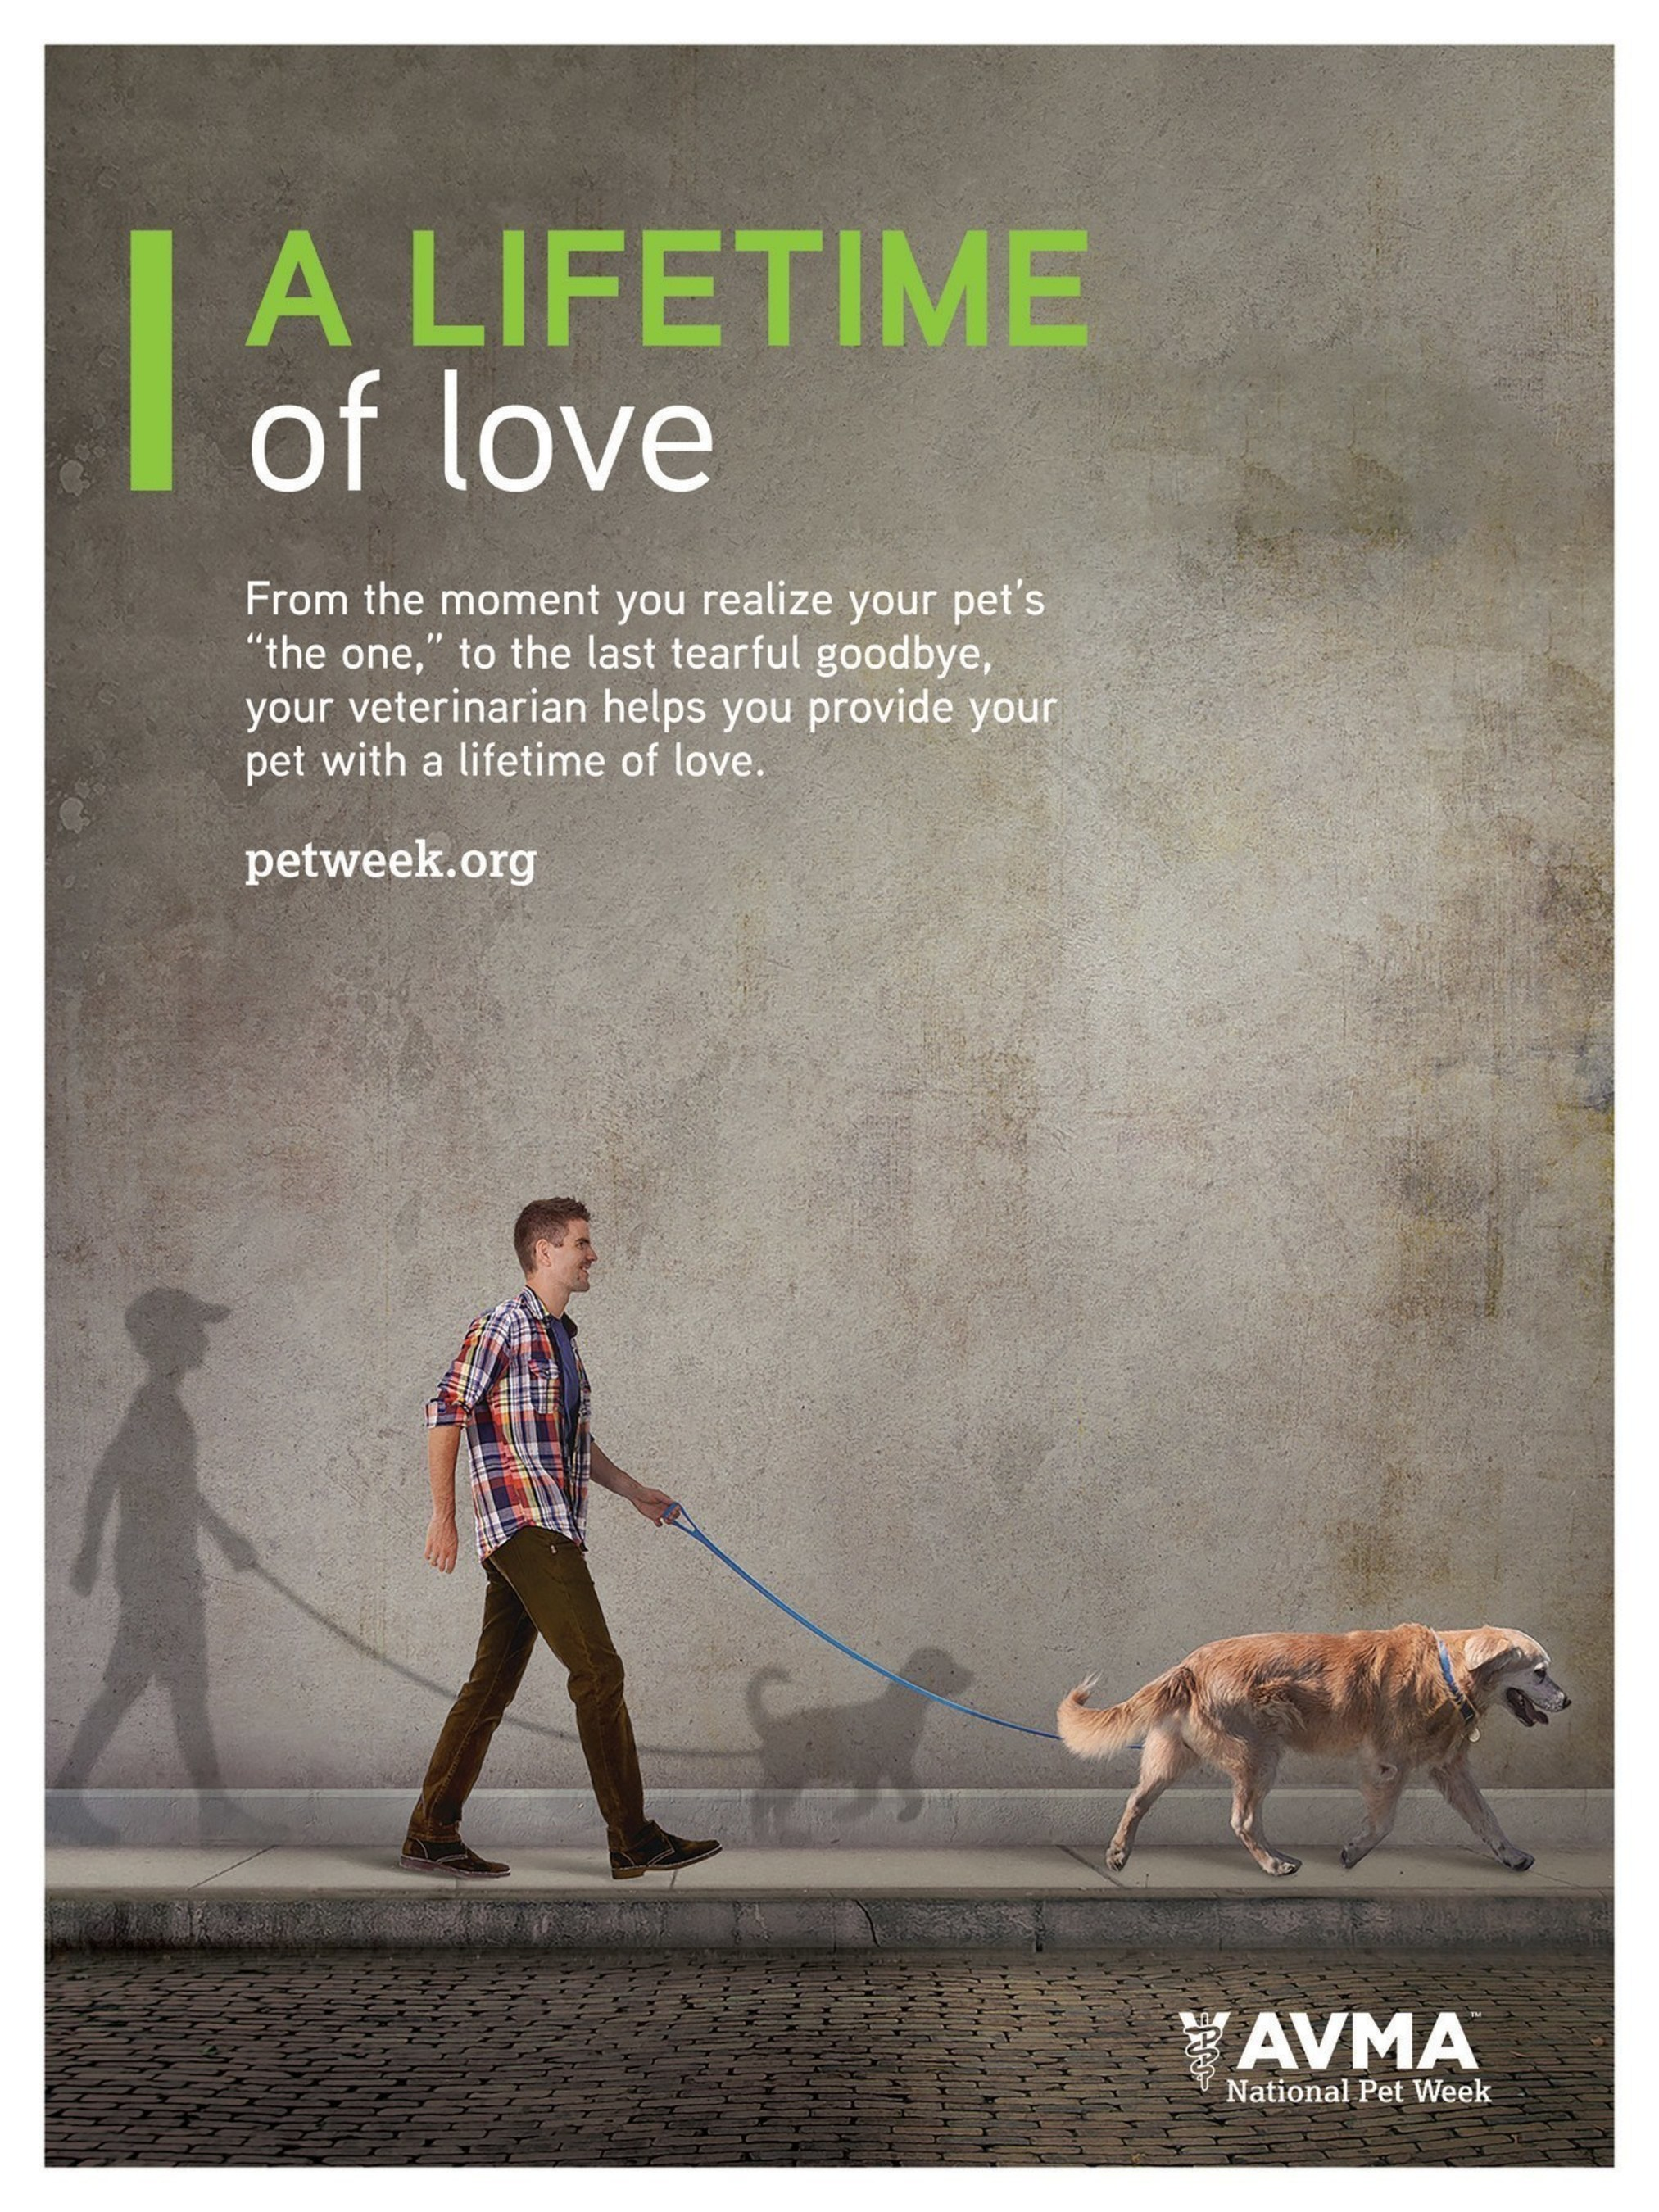 National Pet Week, May 1-7 celebrates veterinarians and clients partnering to provide pets with A Lifetime of Love